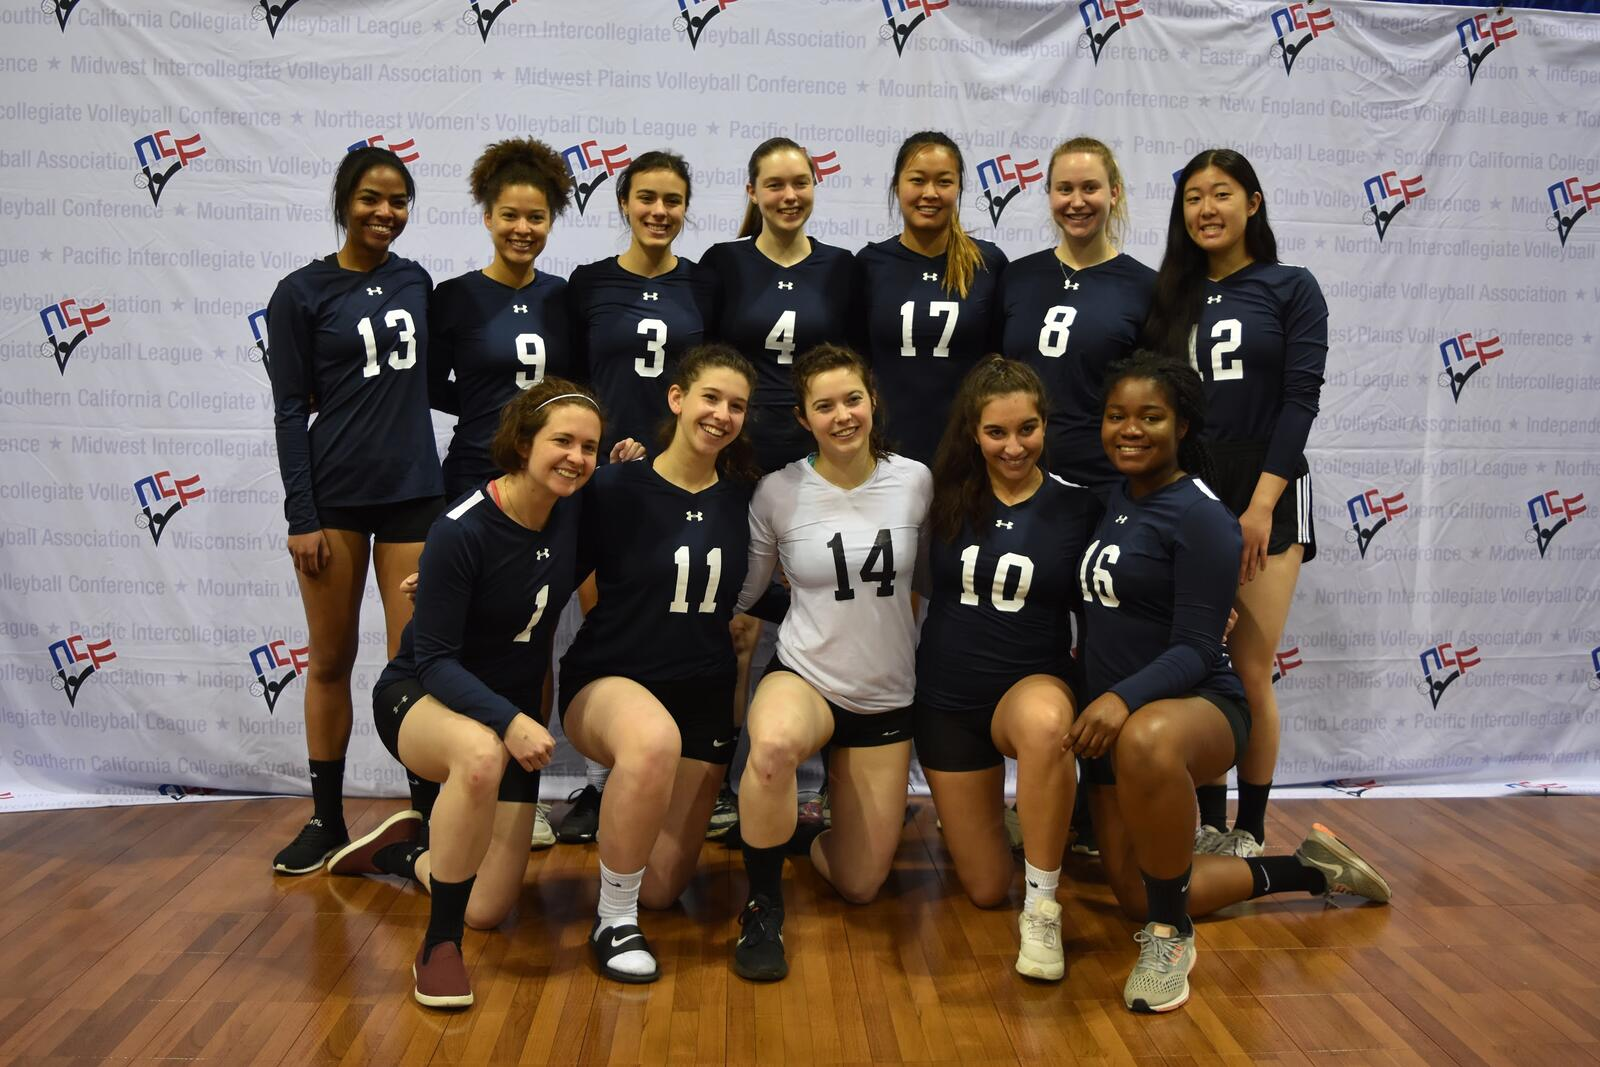 Yale Women's Volleyball 19-20